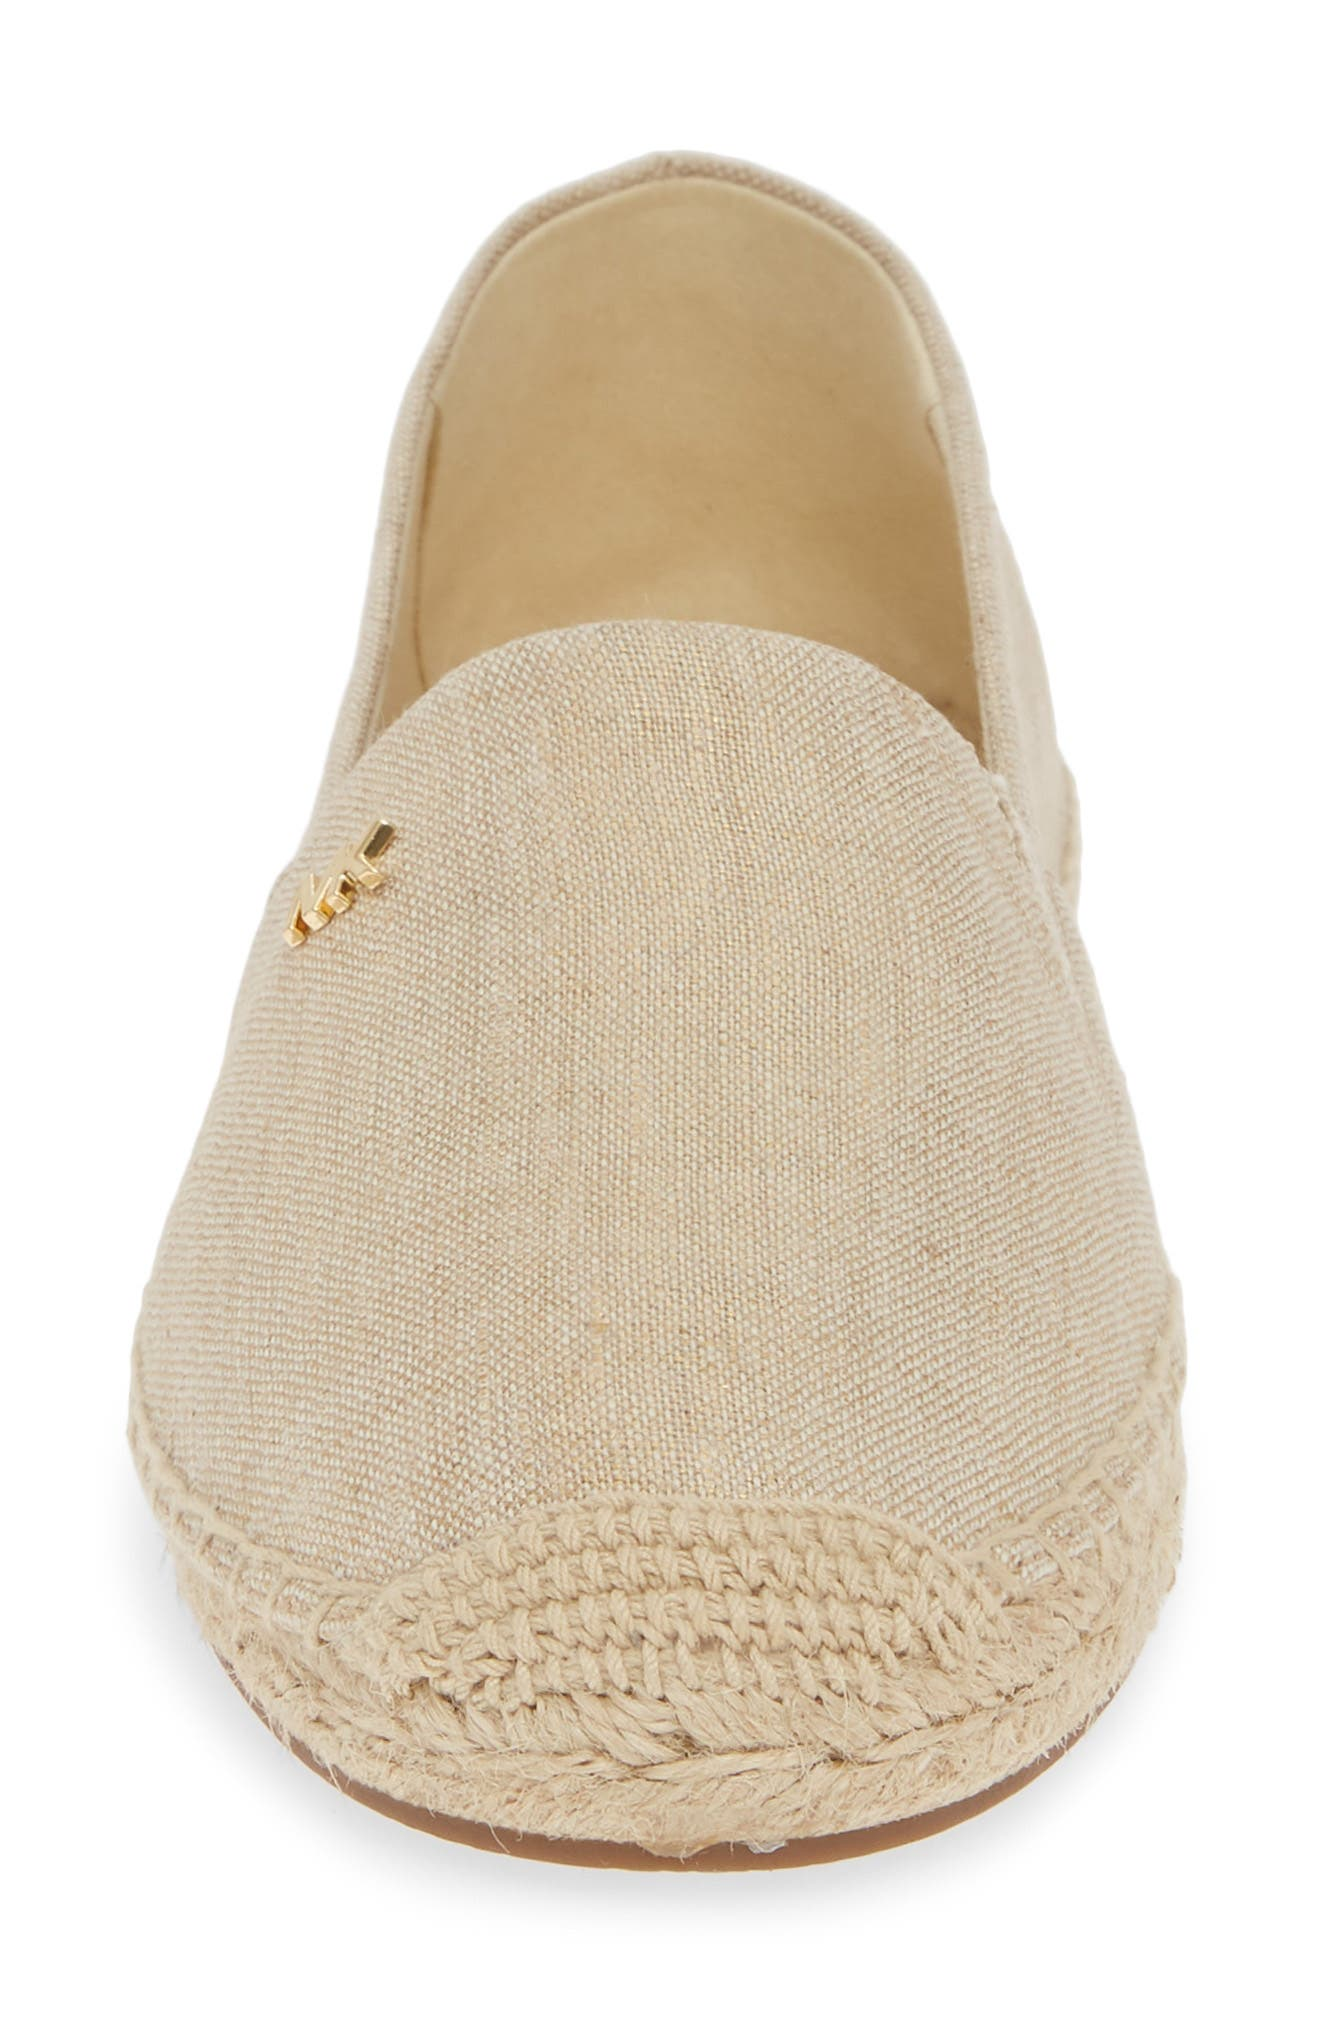 MICHAEL MICHAEL KORS, 'Kendrick' Slip-On Espadrille Flat, Alternate thumbnail 4, color, PALE GOLD FABRIC